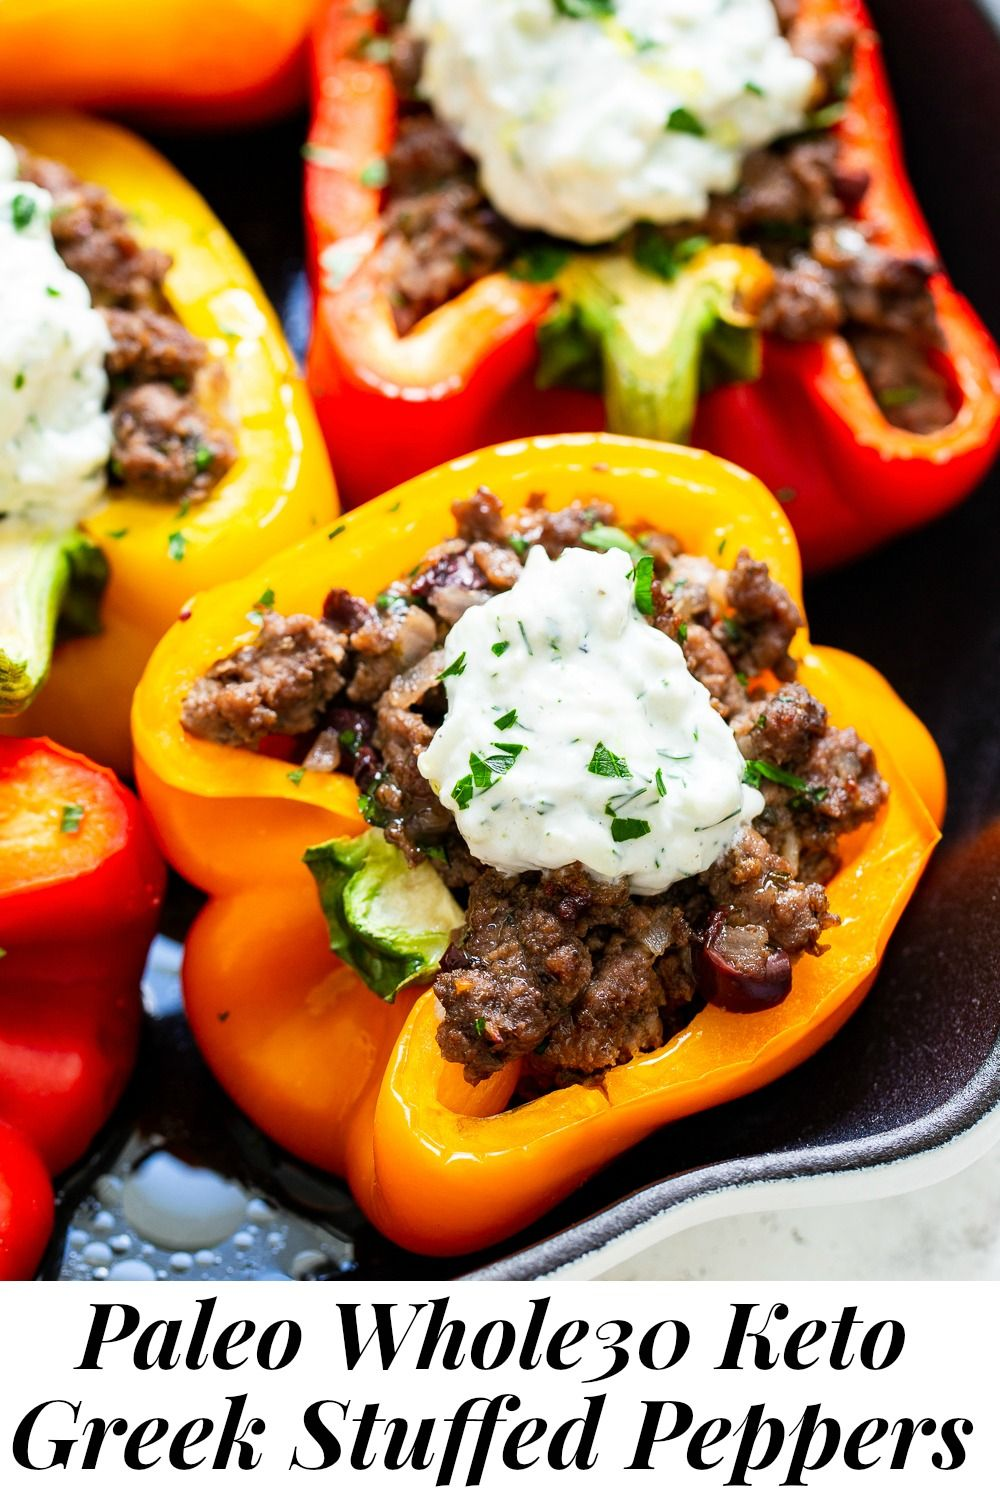 These Flavor Packed Greek Stuffed Peppers Have A Savory Beef Or Lamb Mixture Baked Inside Bell Peppers And Topped With A